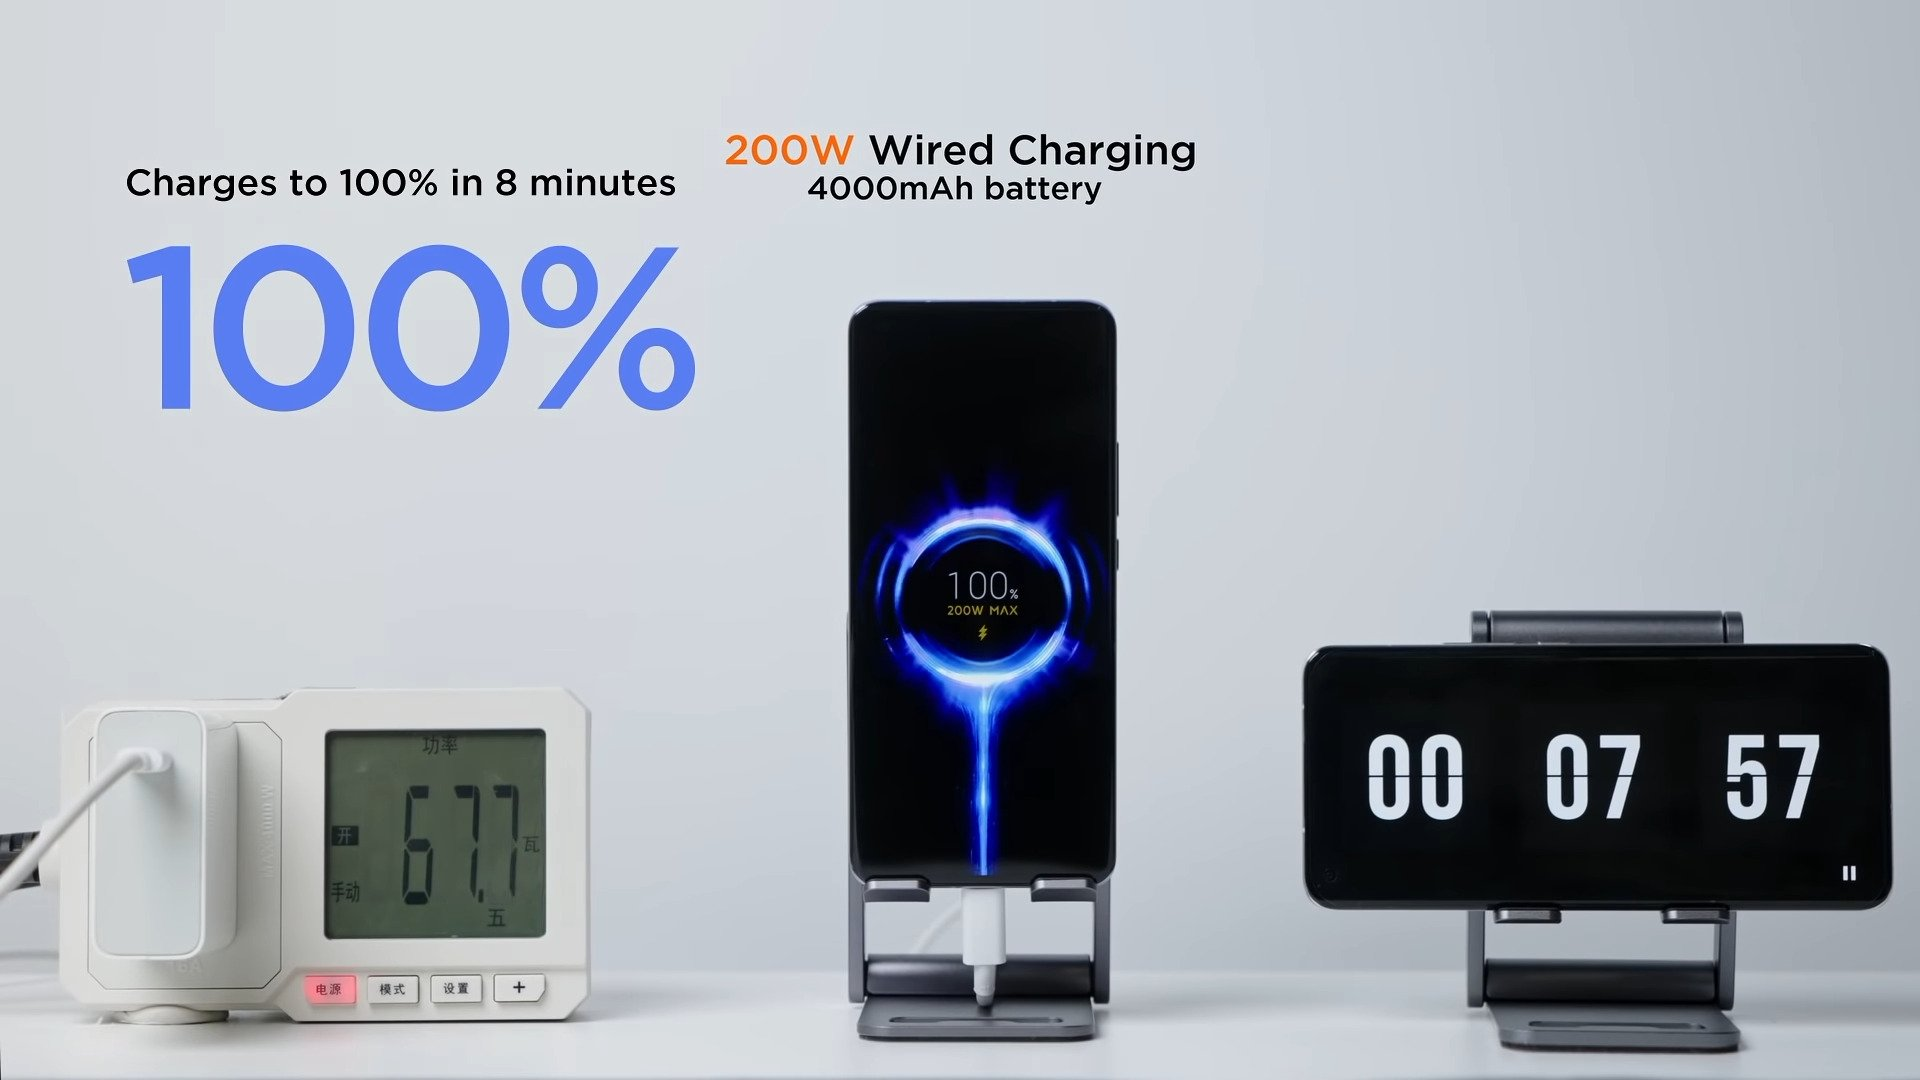 HyperCharge-200W-xiaomi-charge-rapide-smartphone